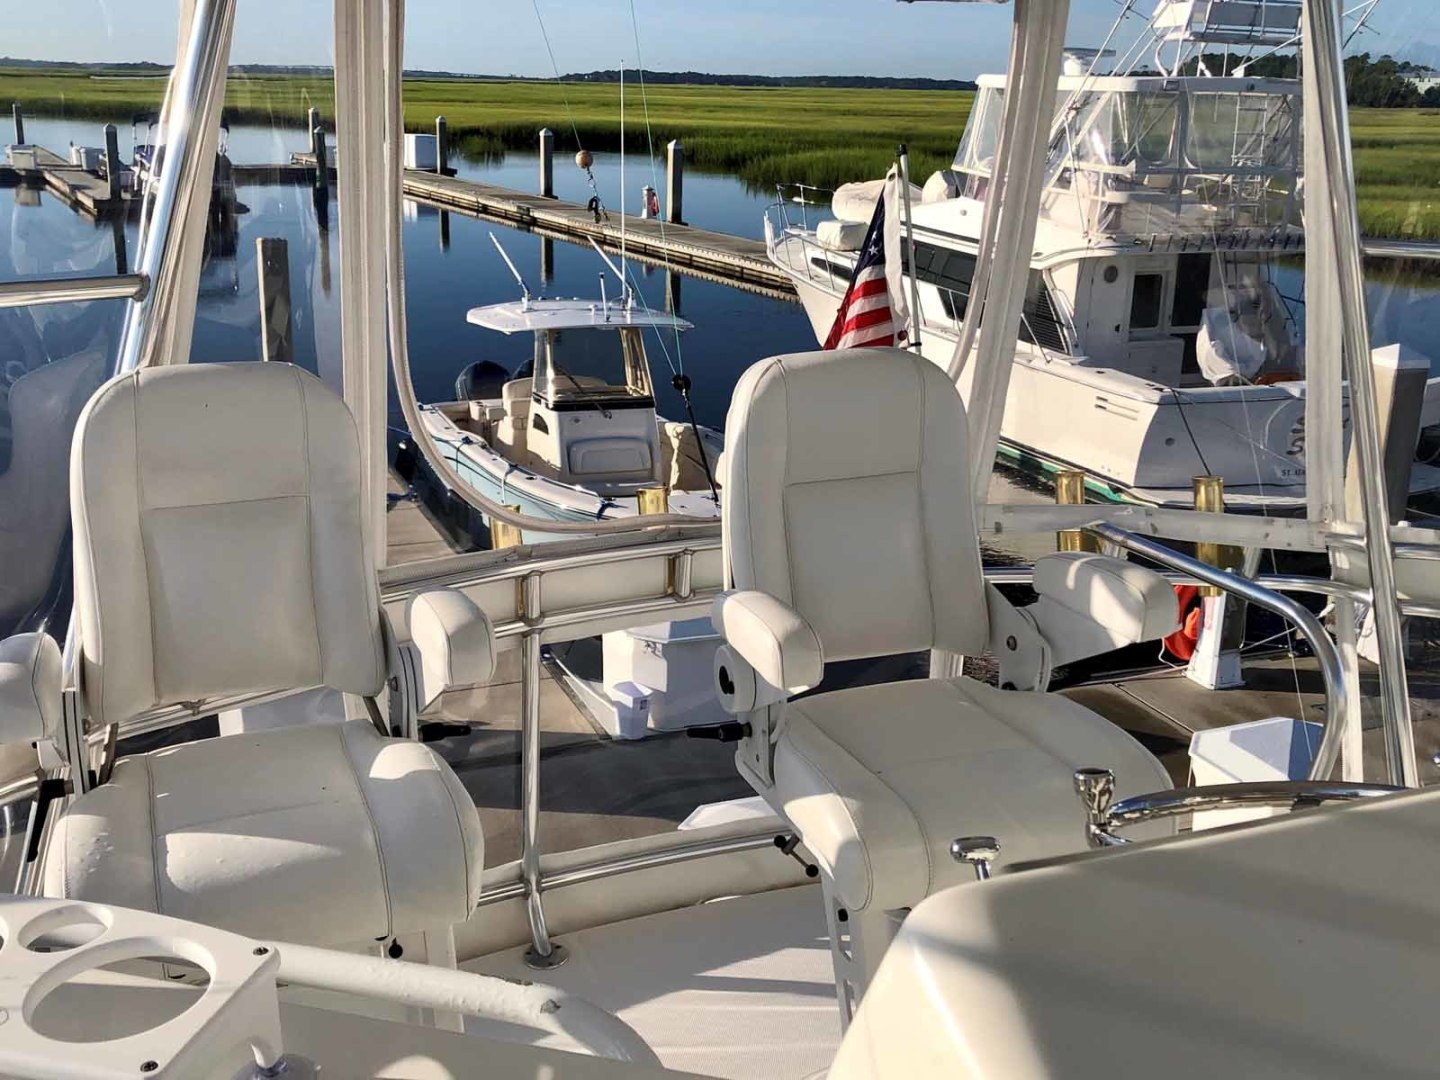 Rampage-45 SF 2004-MY DOLLY Ft. Lauderdale-Florida-United States-Flybridge Looking Aft-1464055 | Thumbnail